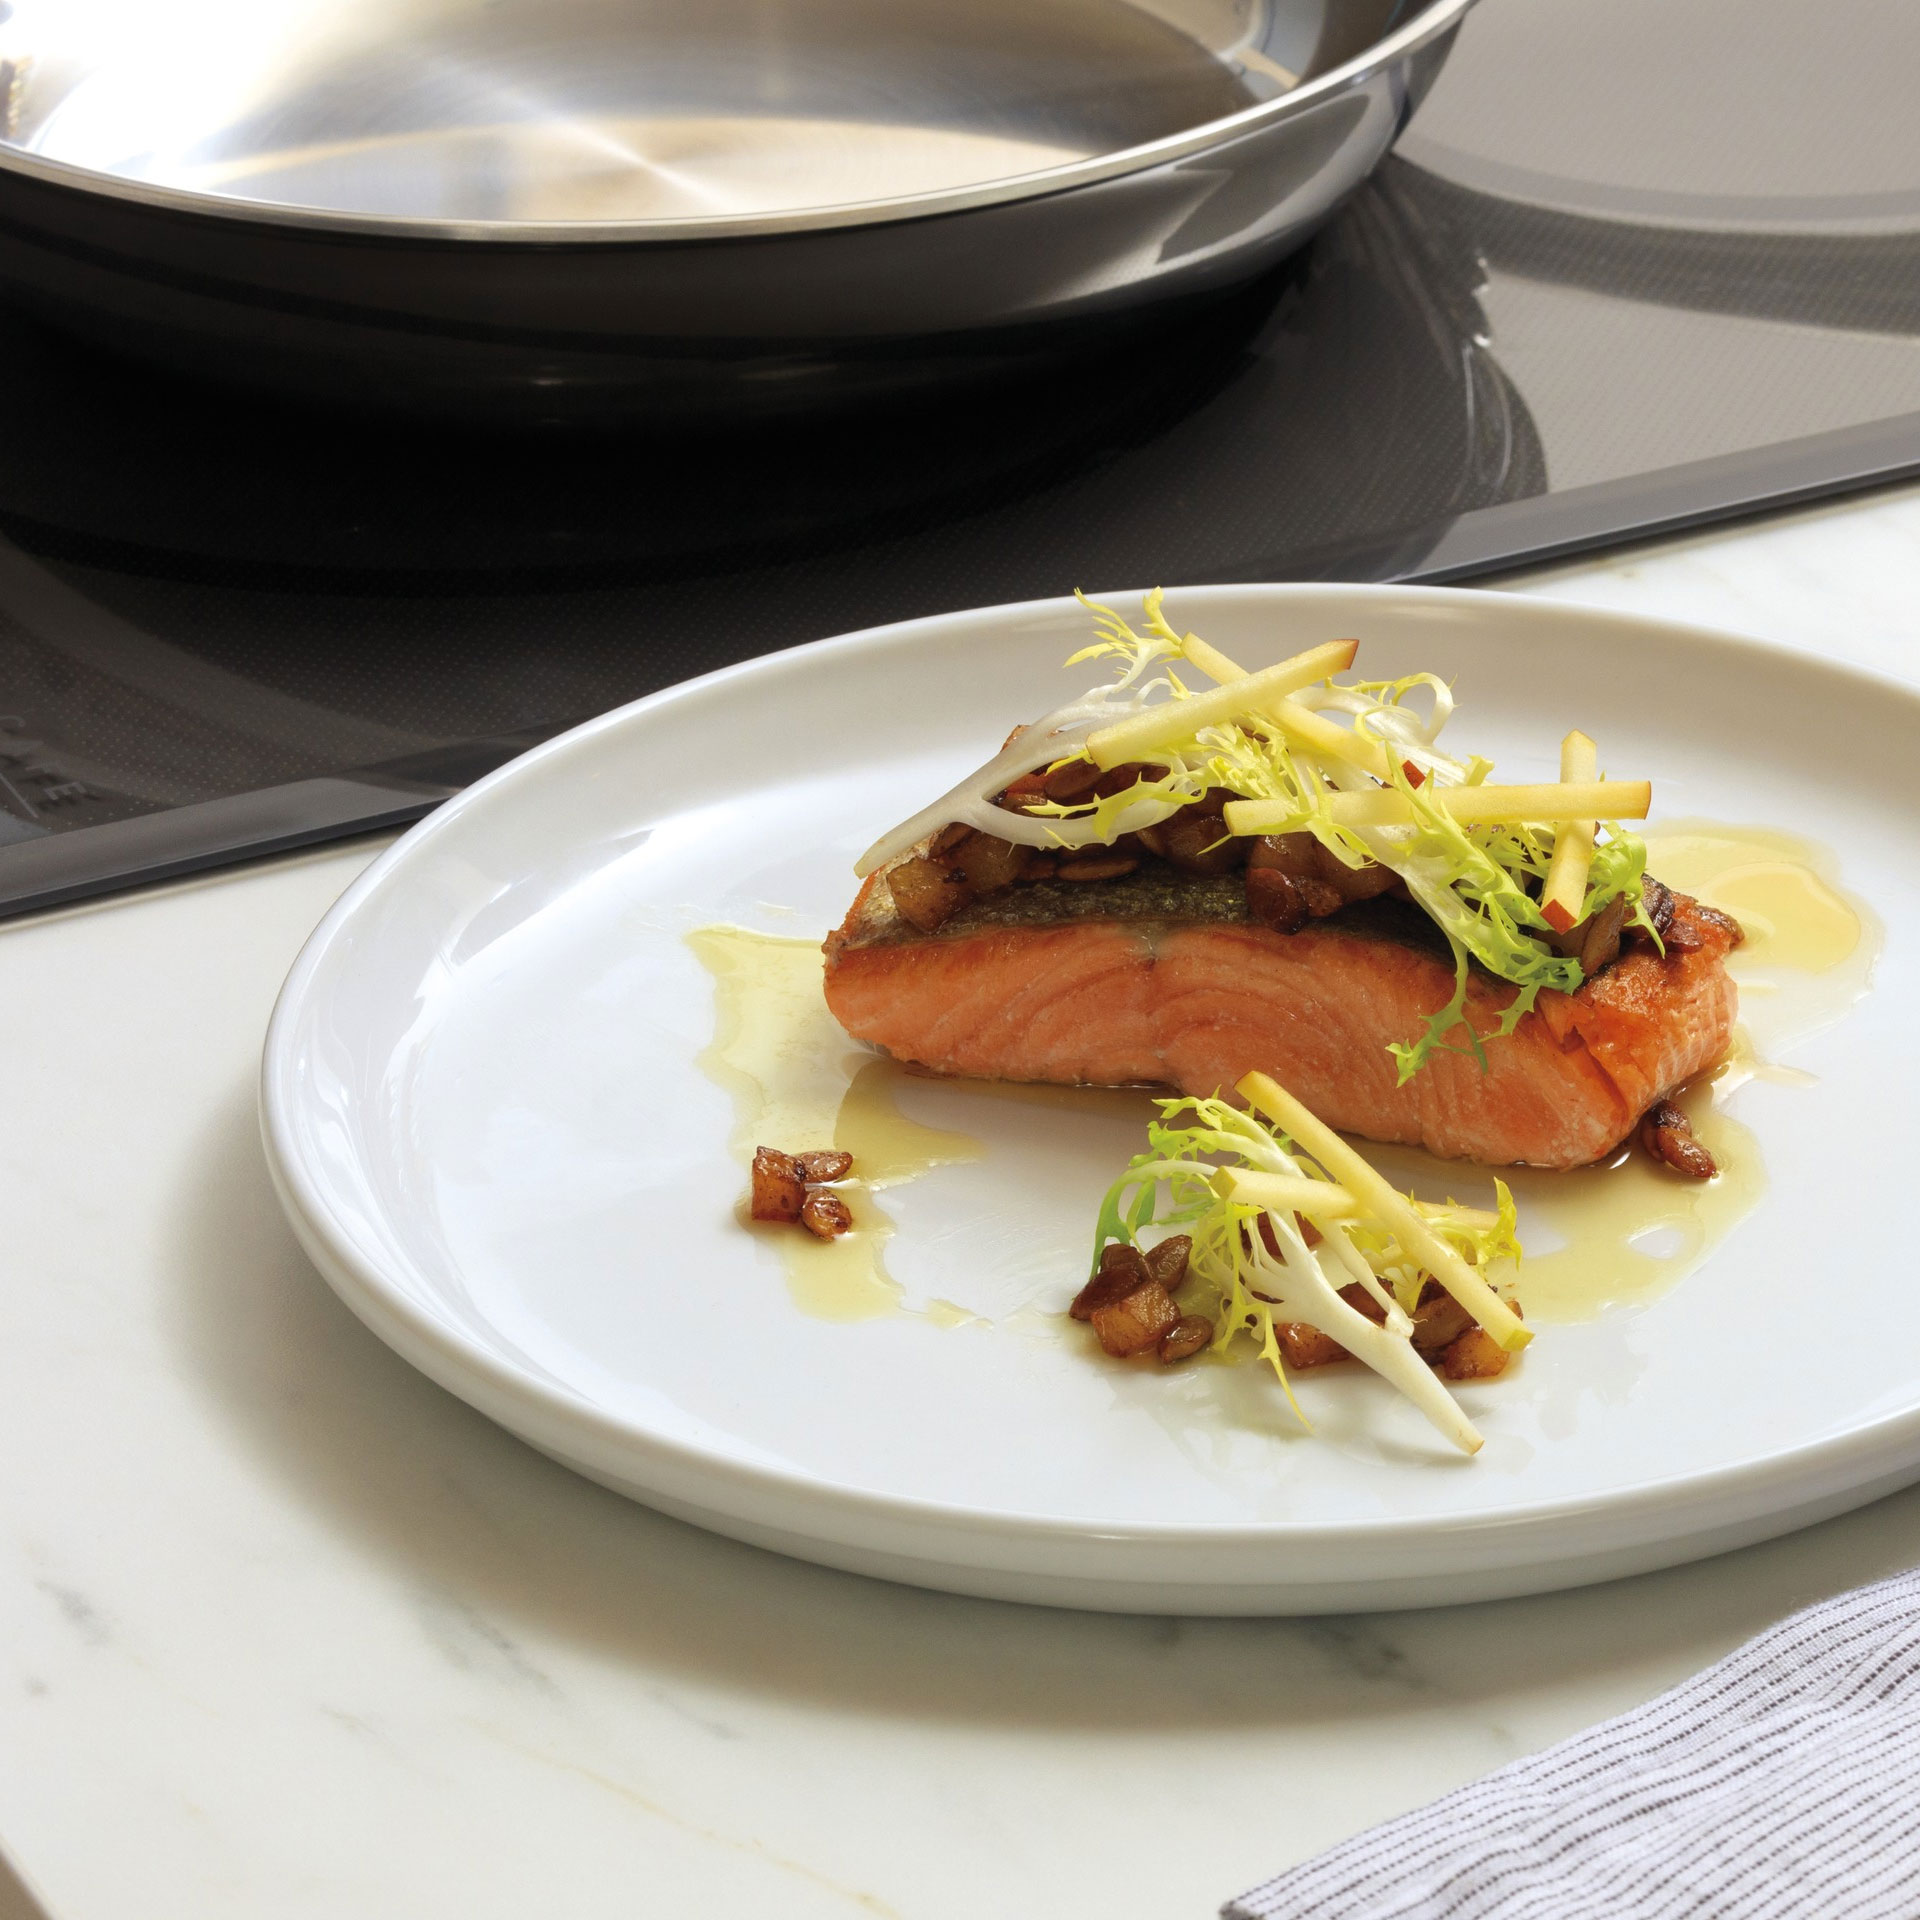 Gourmet guided cooktop with salmon